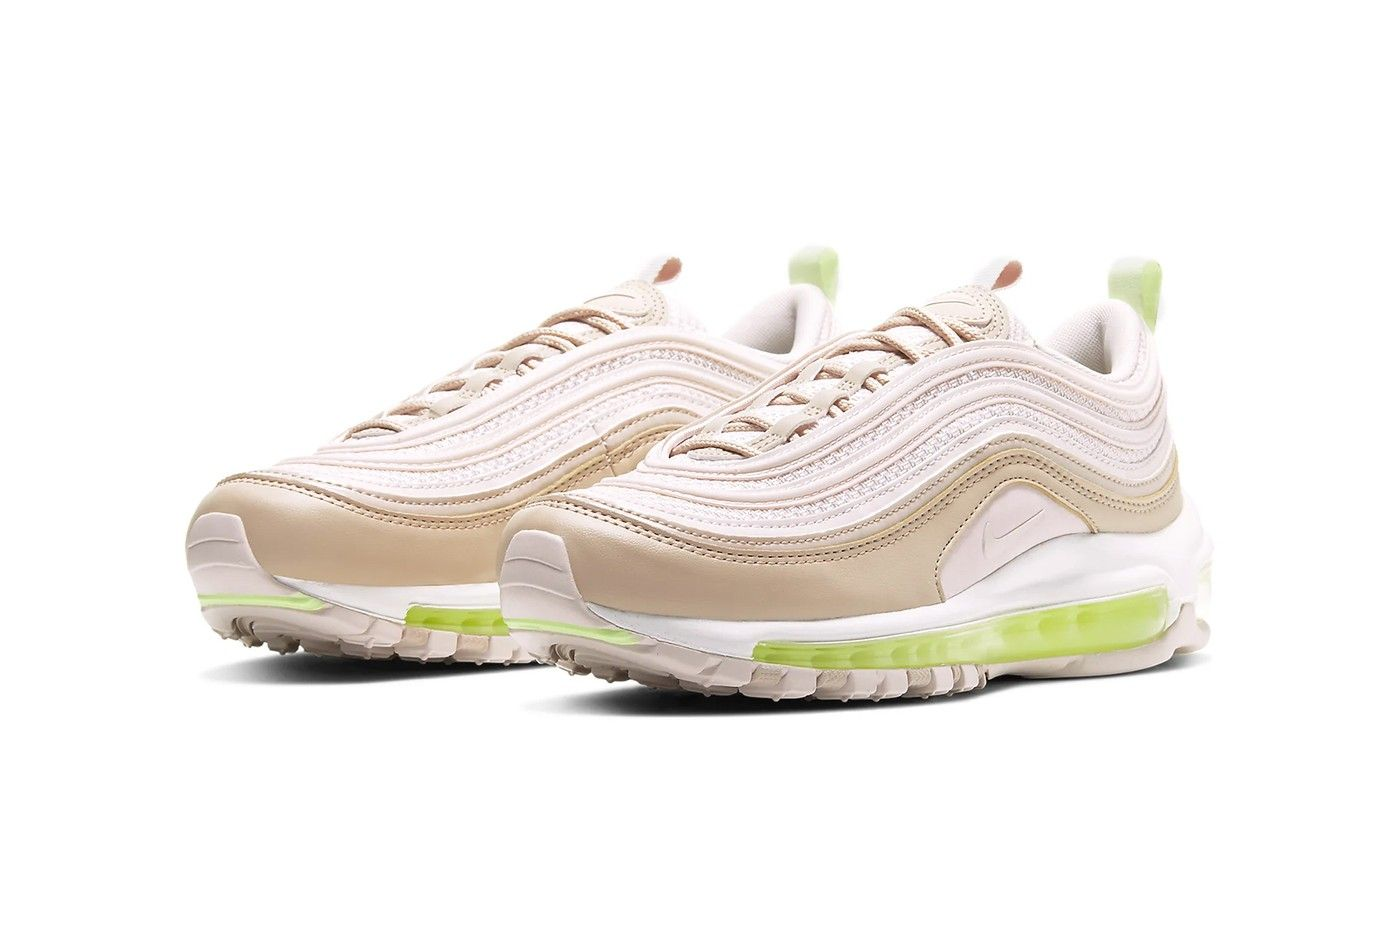 Nike's Air Max 97 Arrives in